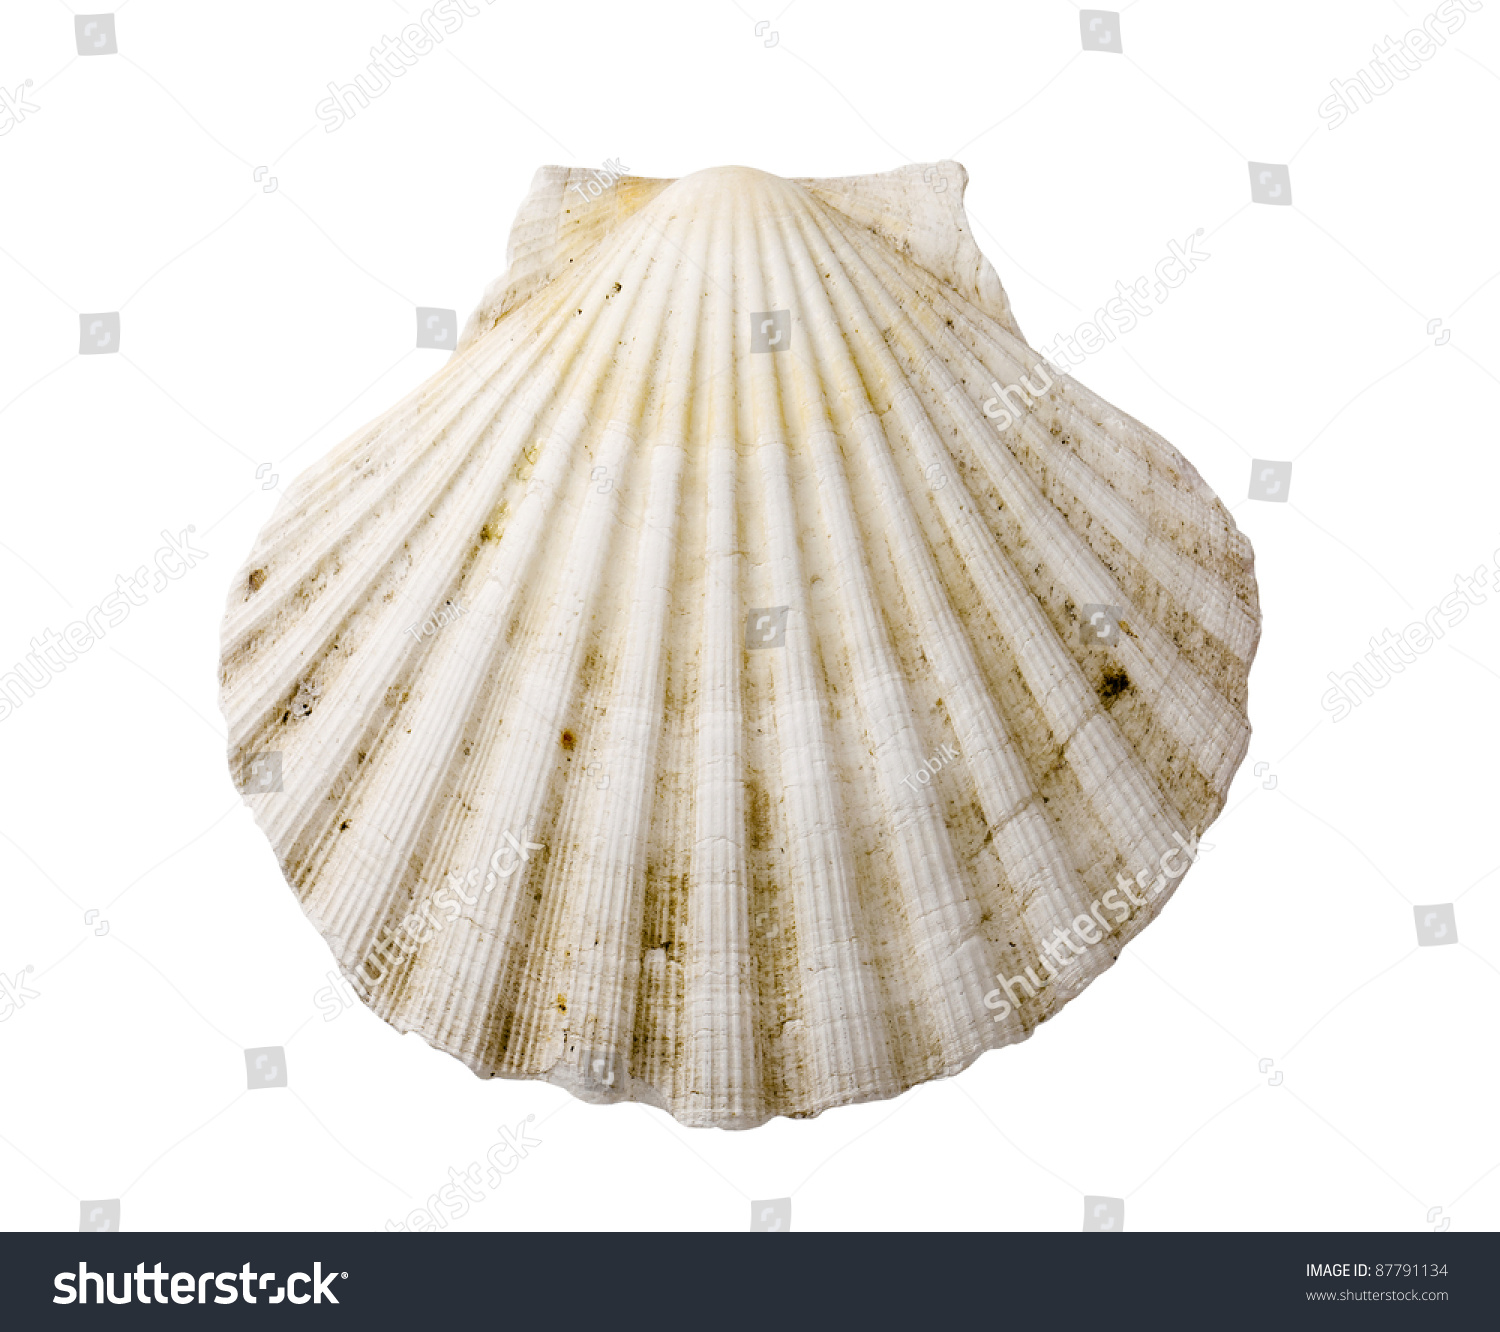 Scallop shell stock photo 87791134 shutterstock scallop shell biocorpaavc Image collections